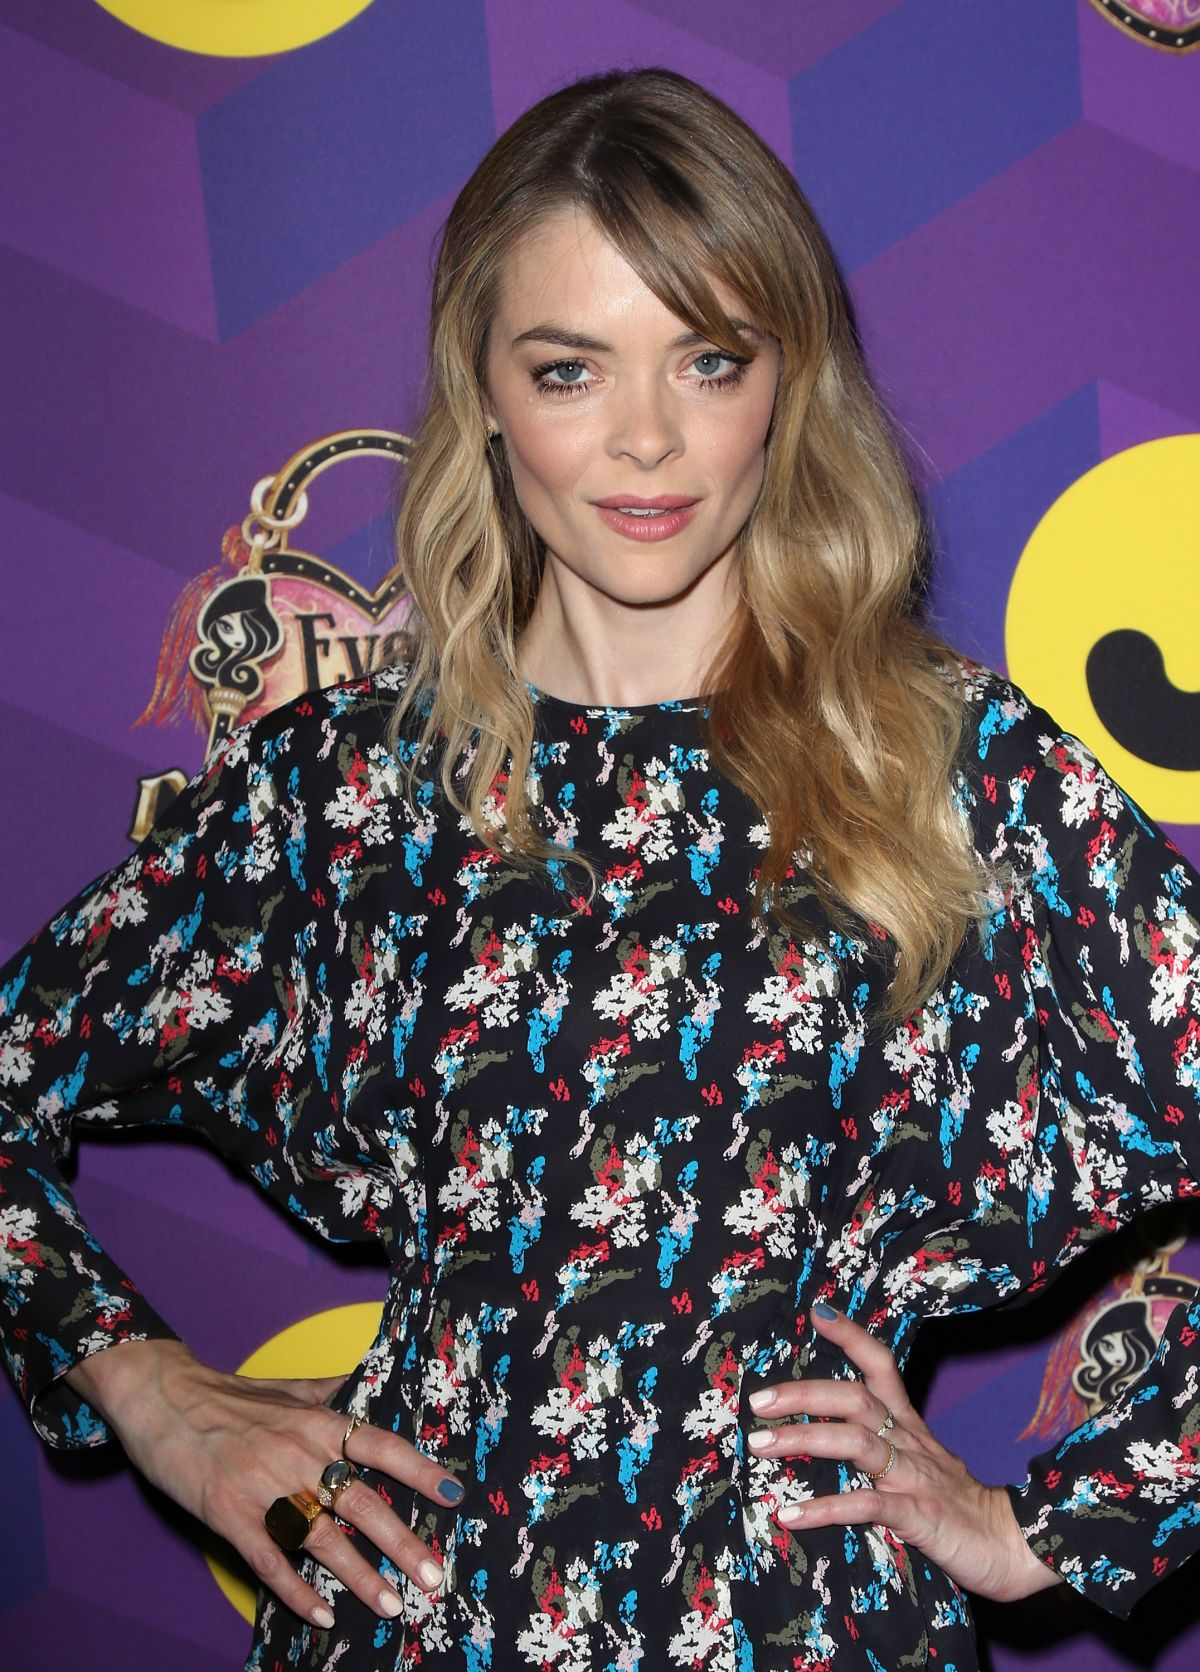 JAIME KING at Just Jared's Way To Wonderland Party in West Hollywood